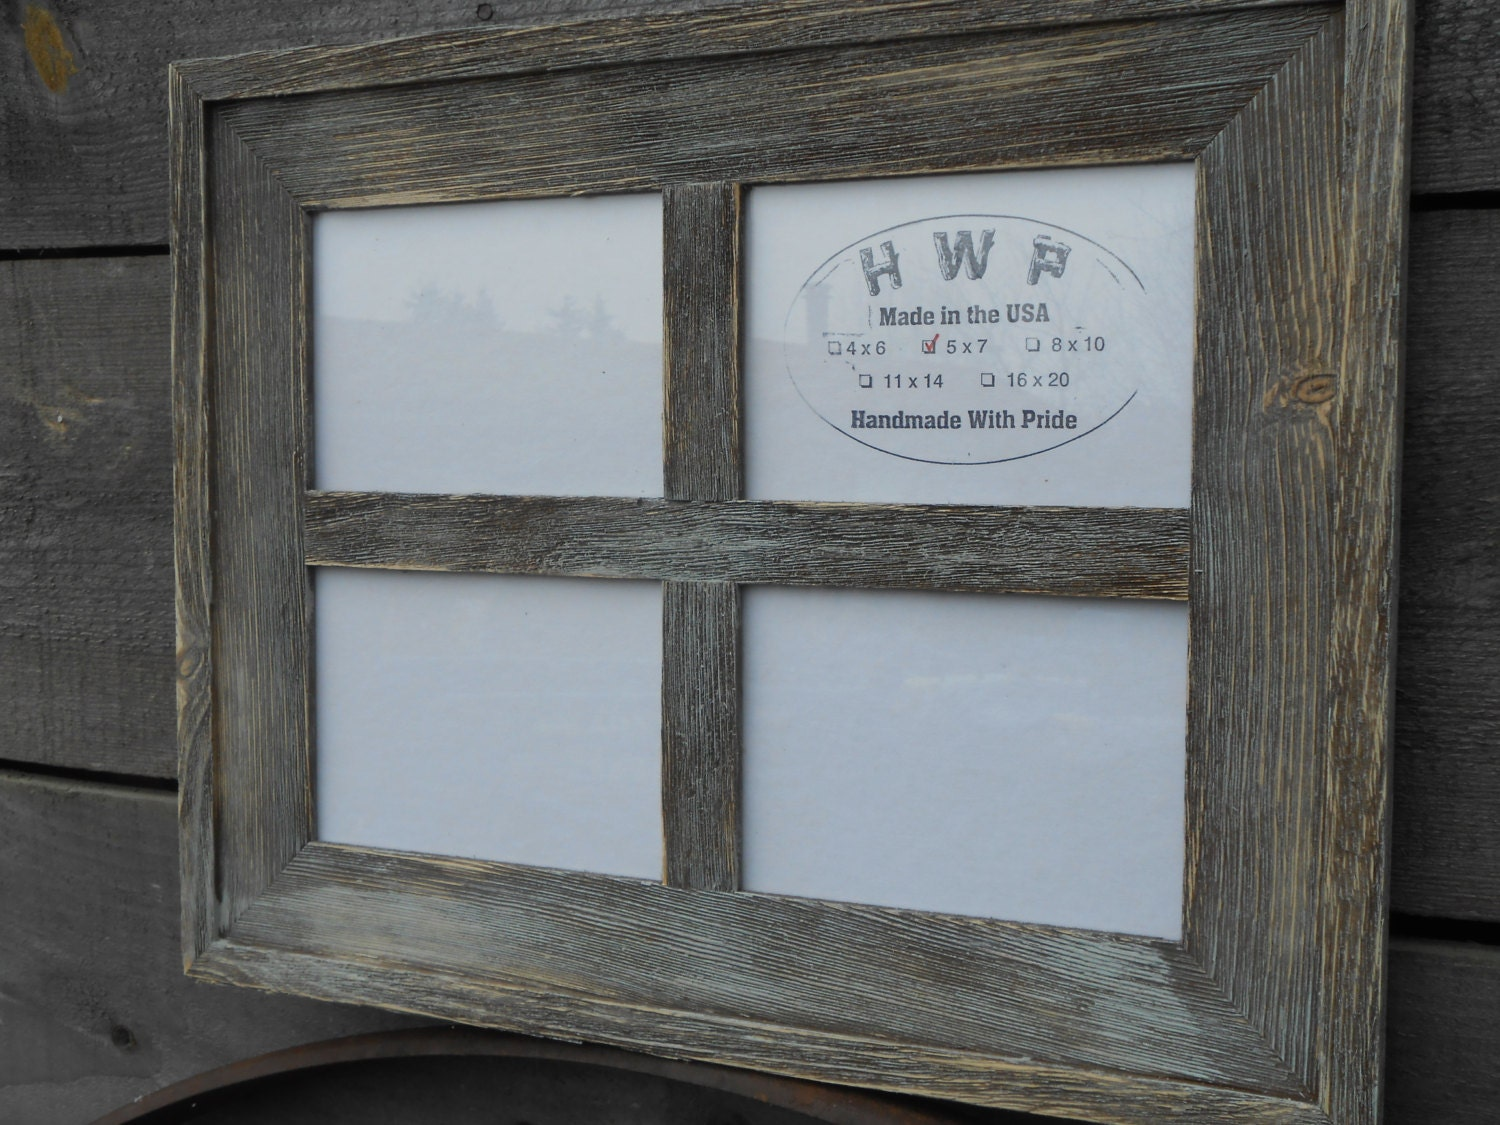 Rustic Barn Board Window Frame Handmade Handcrafted Barn